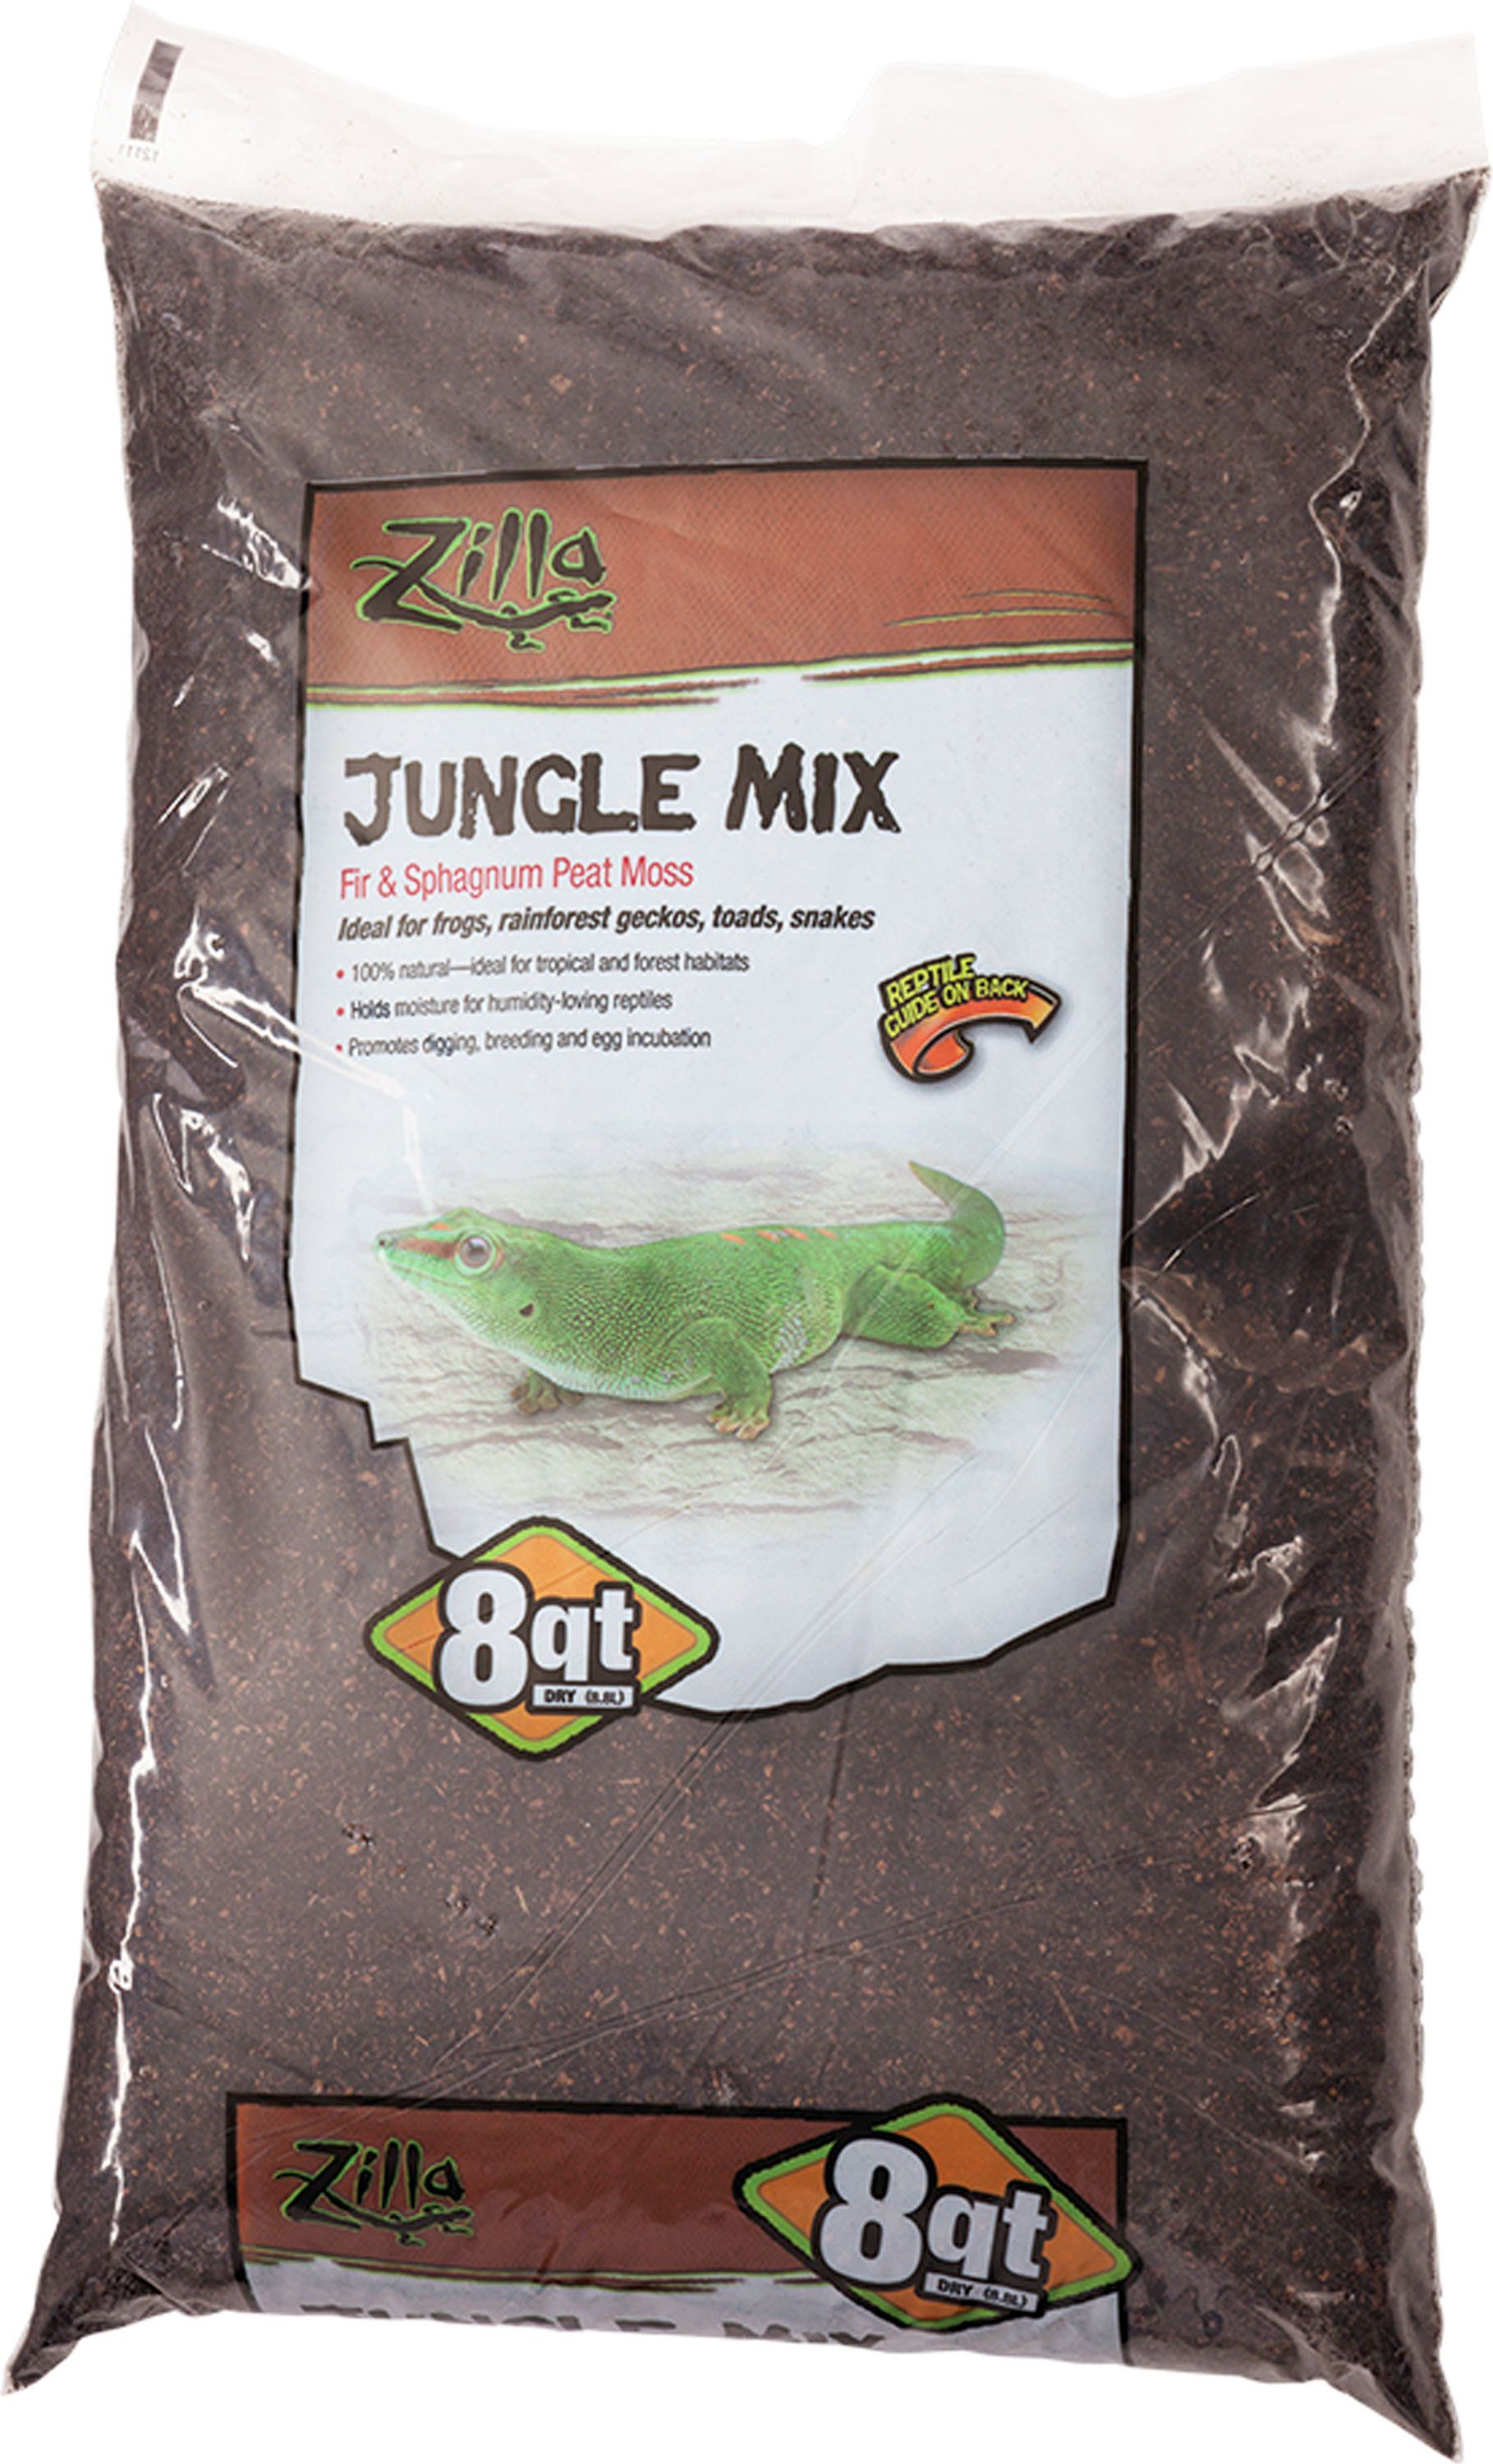 Jungle mix reptile bedding products pinterest reptiles and